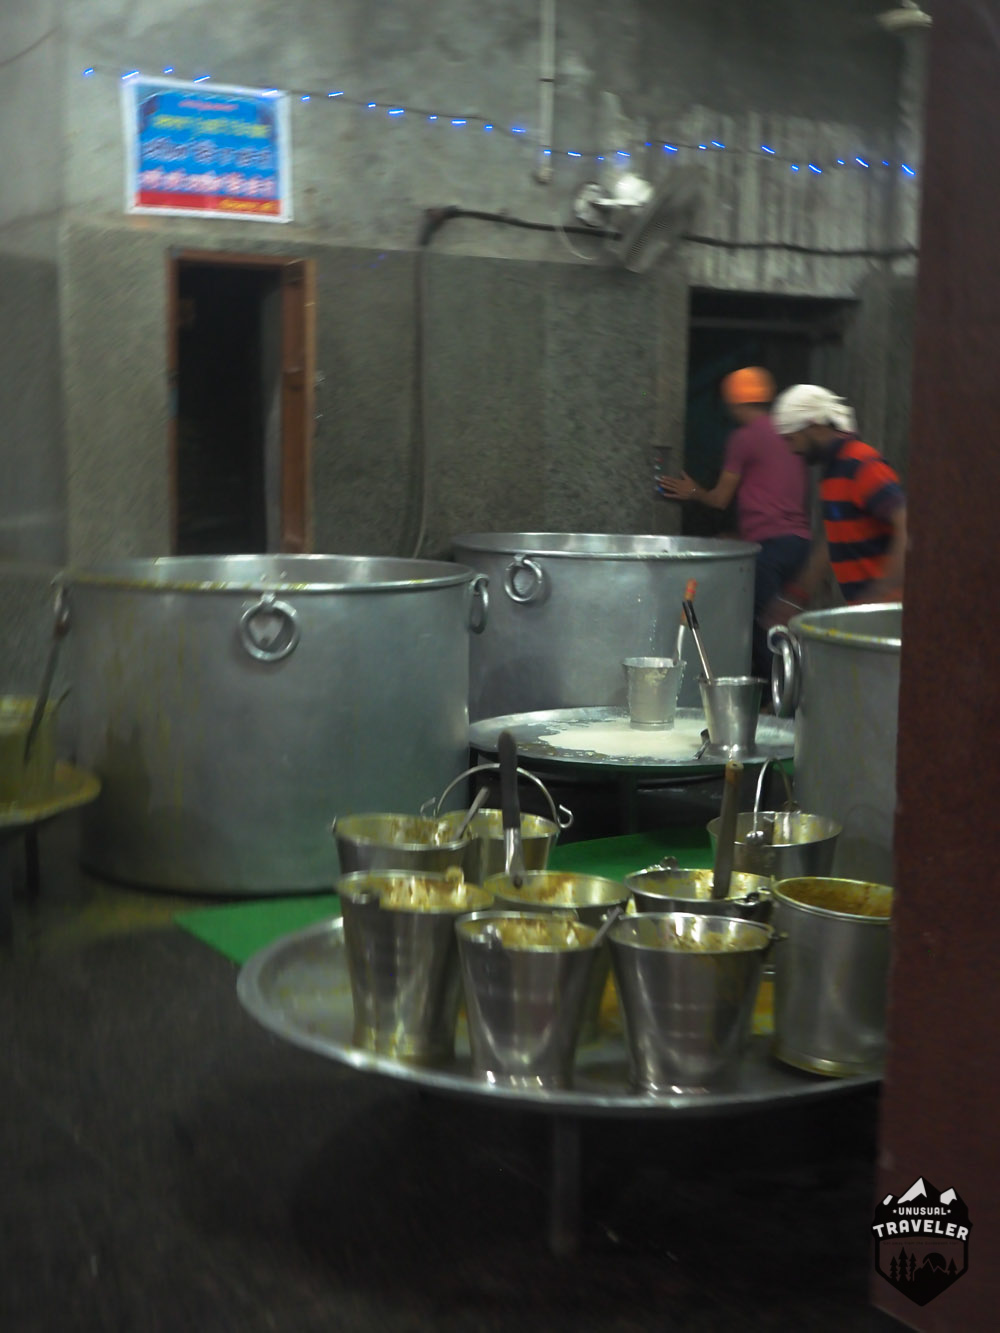 the people working in the kitchen at the golden temple